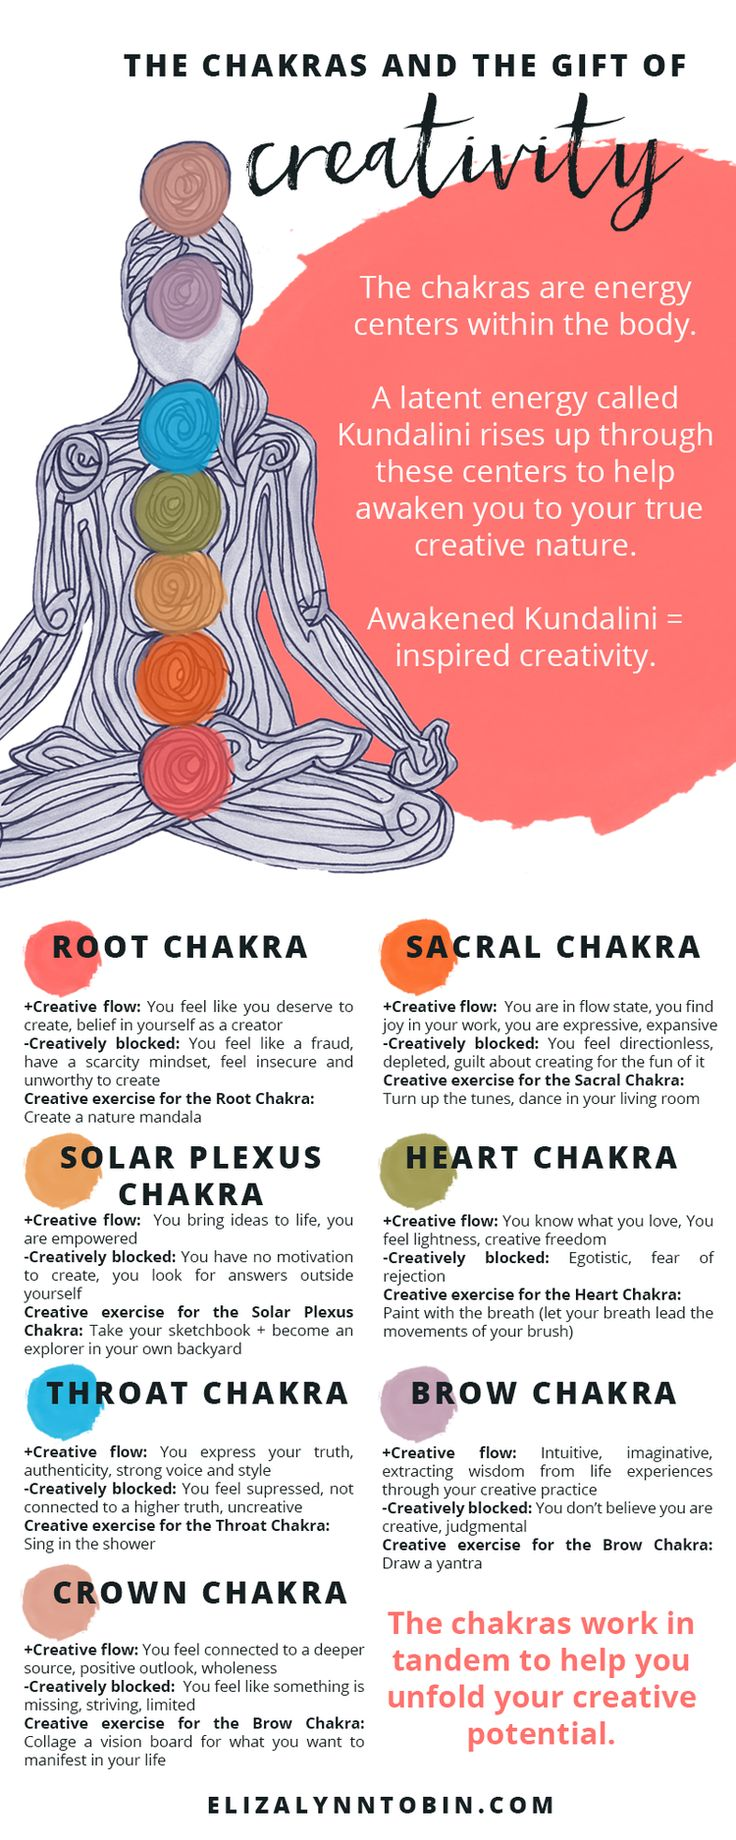 17 Best images about Chakras & Kundalini on Pinterest ...